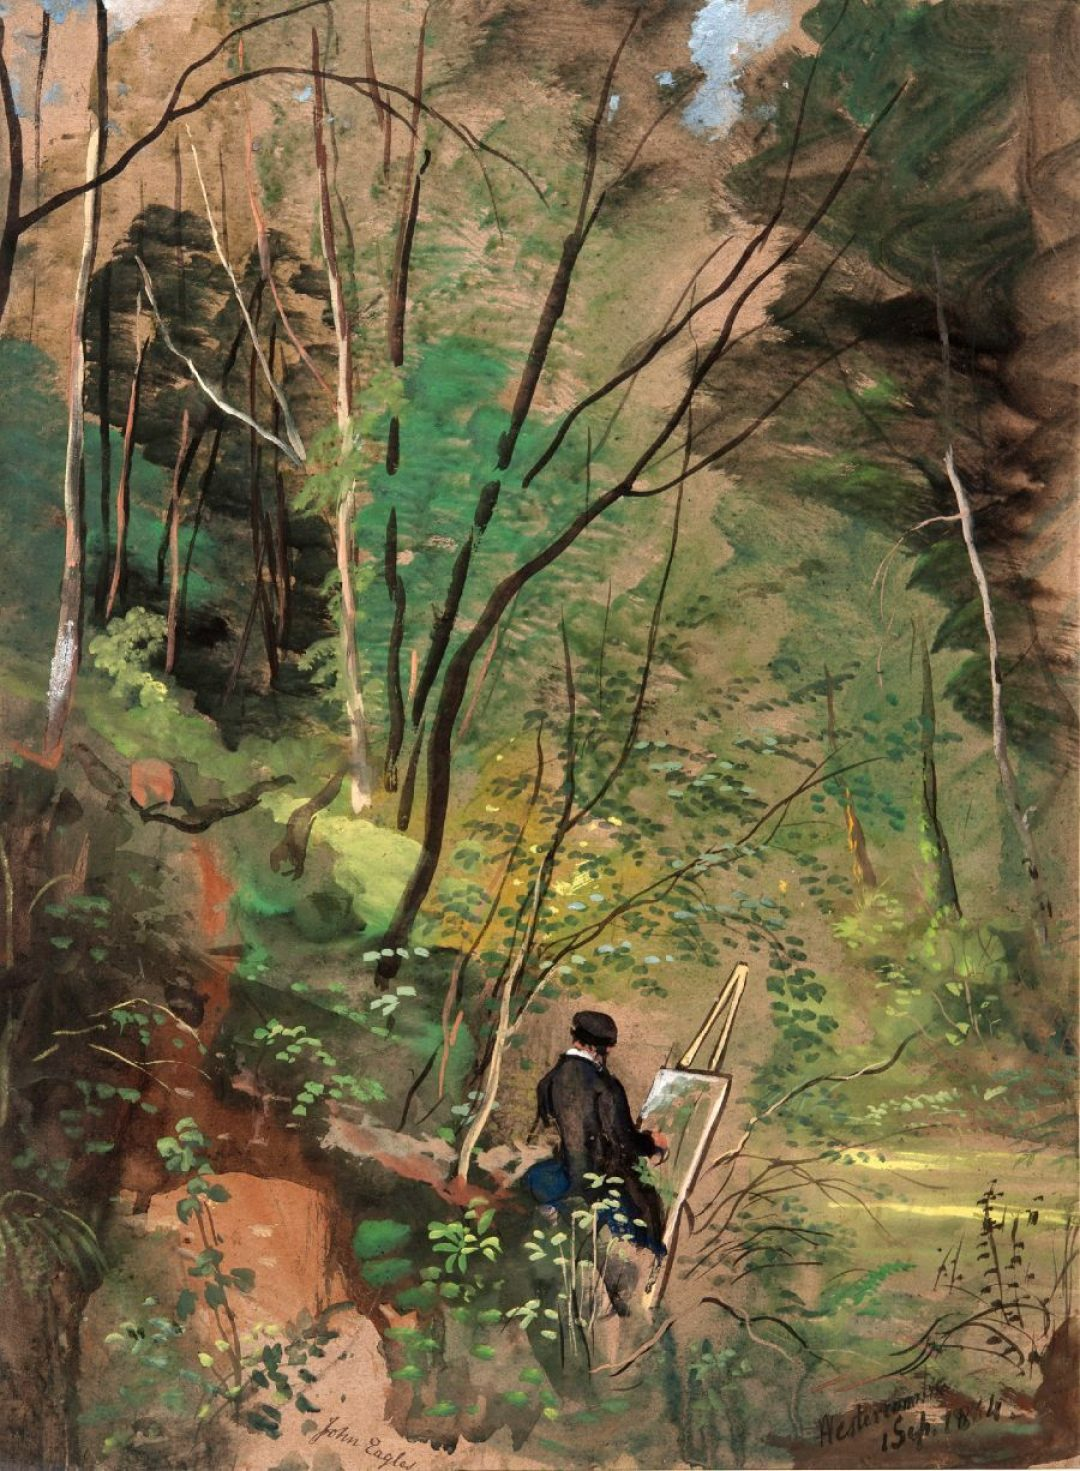 CWB 2 24c Artist Sketching at Hestercombe by J Eagles 1834 web